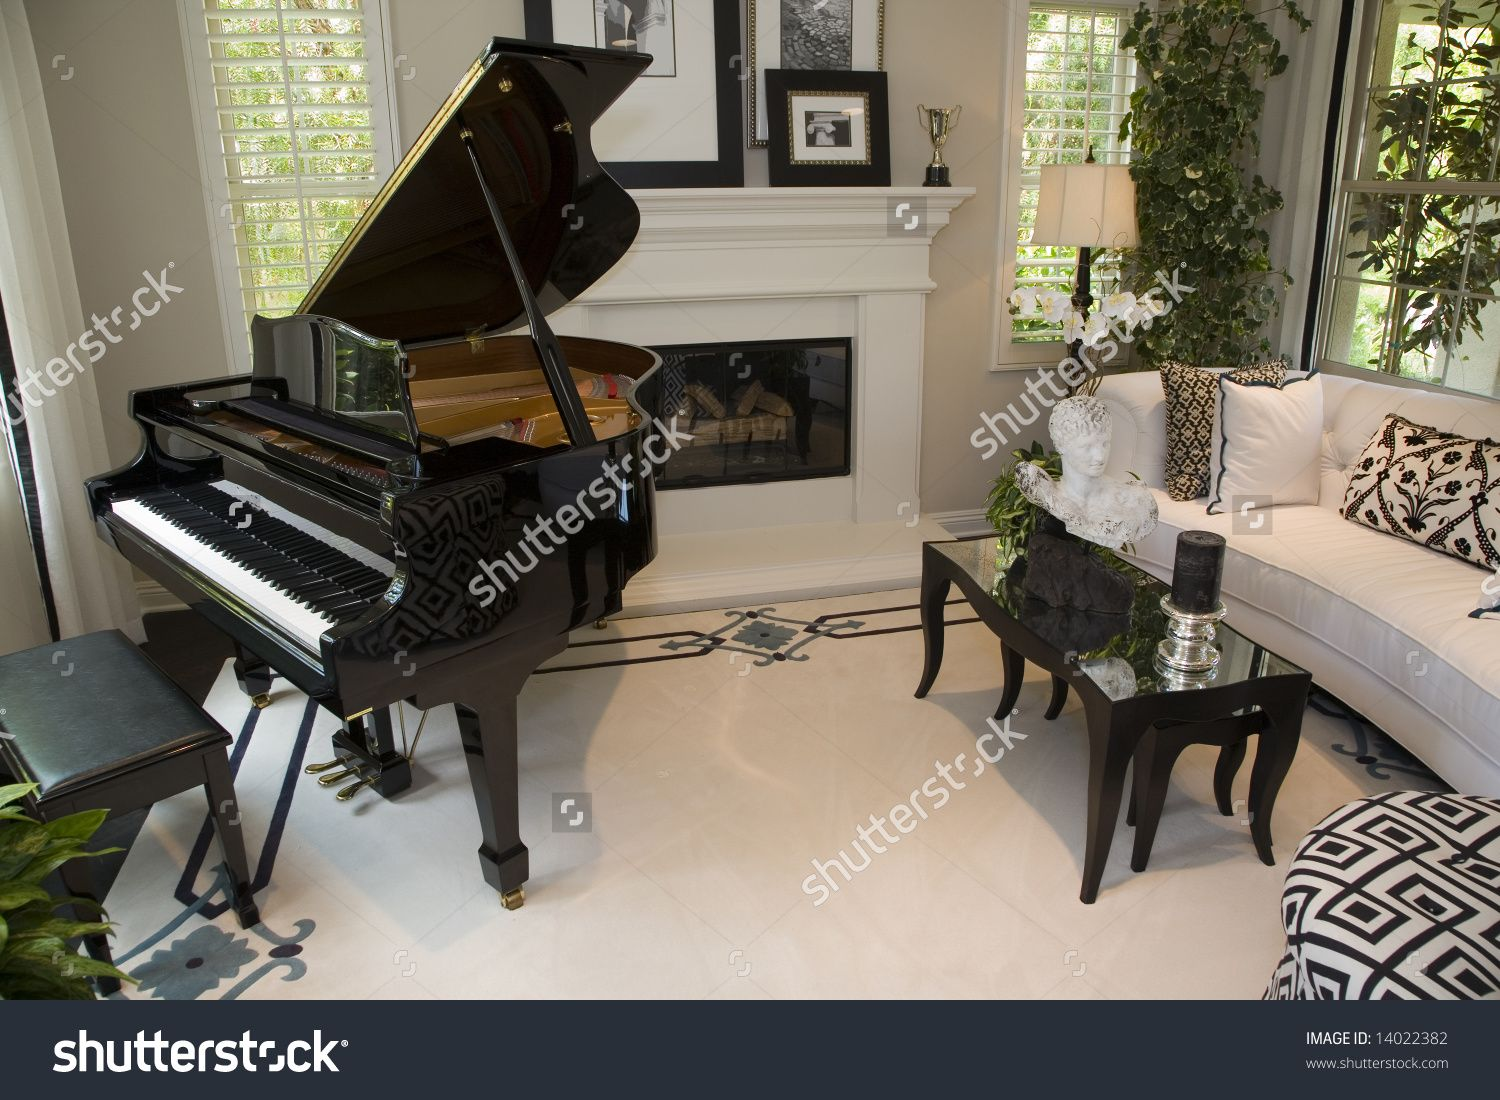 Stock photo luxury house interior with open floor plan for Grand piano in living room